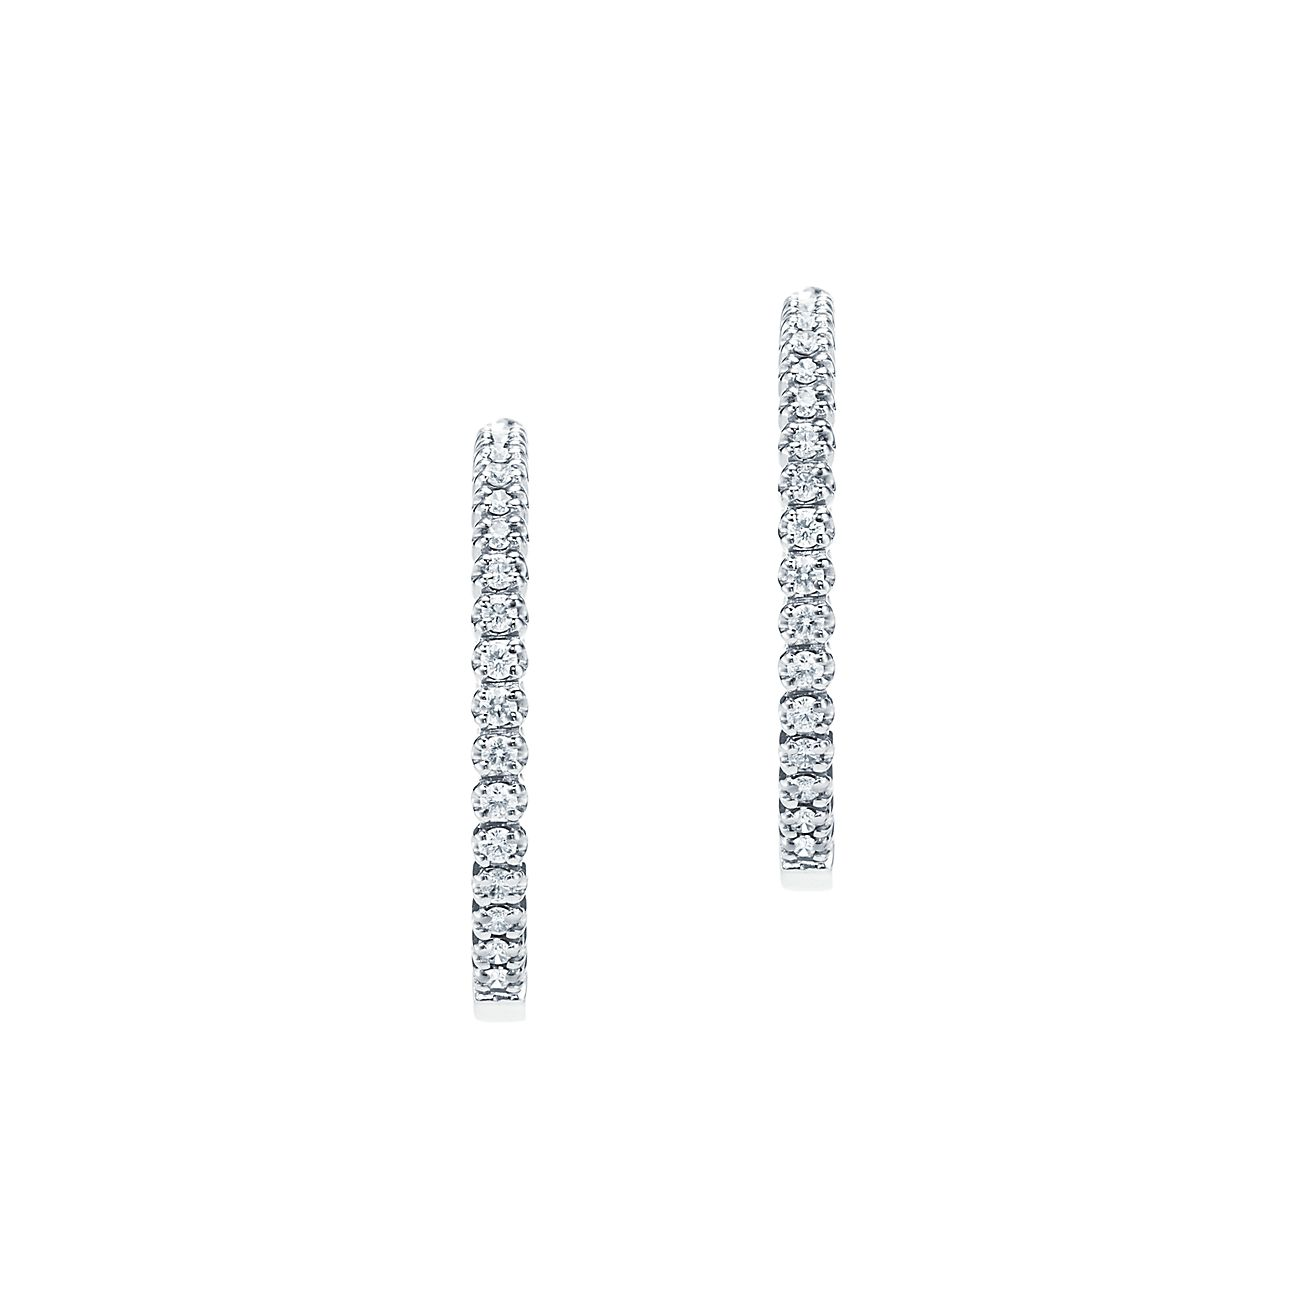 deb574be8 ... tiffany metro hinged hoop earrings in 18k white gold with diamonds  small. tiffany co. ...